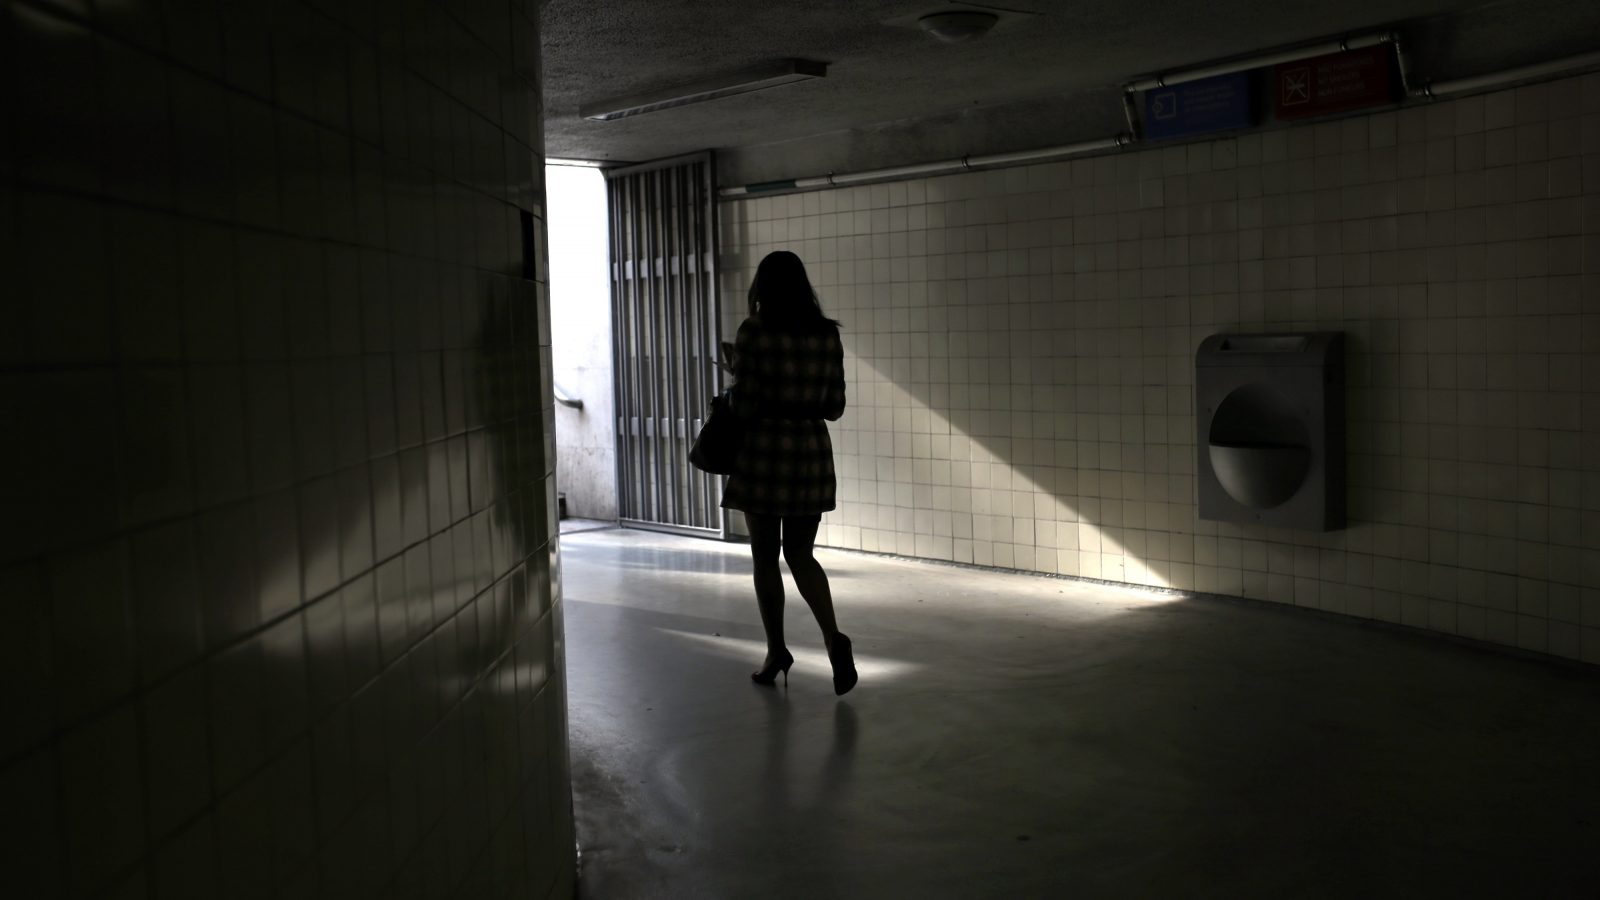 A woman walks out of Lisbon's Saldanha subway station, in Lisbon, Portugal, Wednesday, March 4, 2015. Every working day thousands of commuters use the four line subway network in the Portuguese capital. (AP Photo/Francisco Seco)